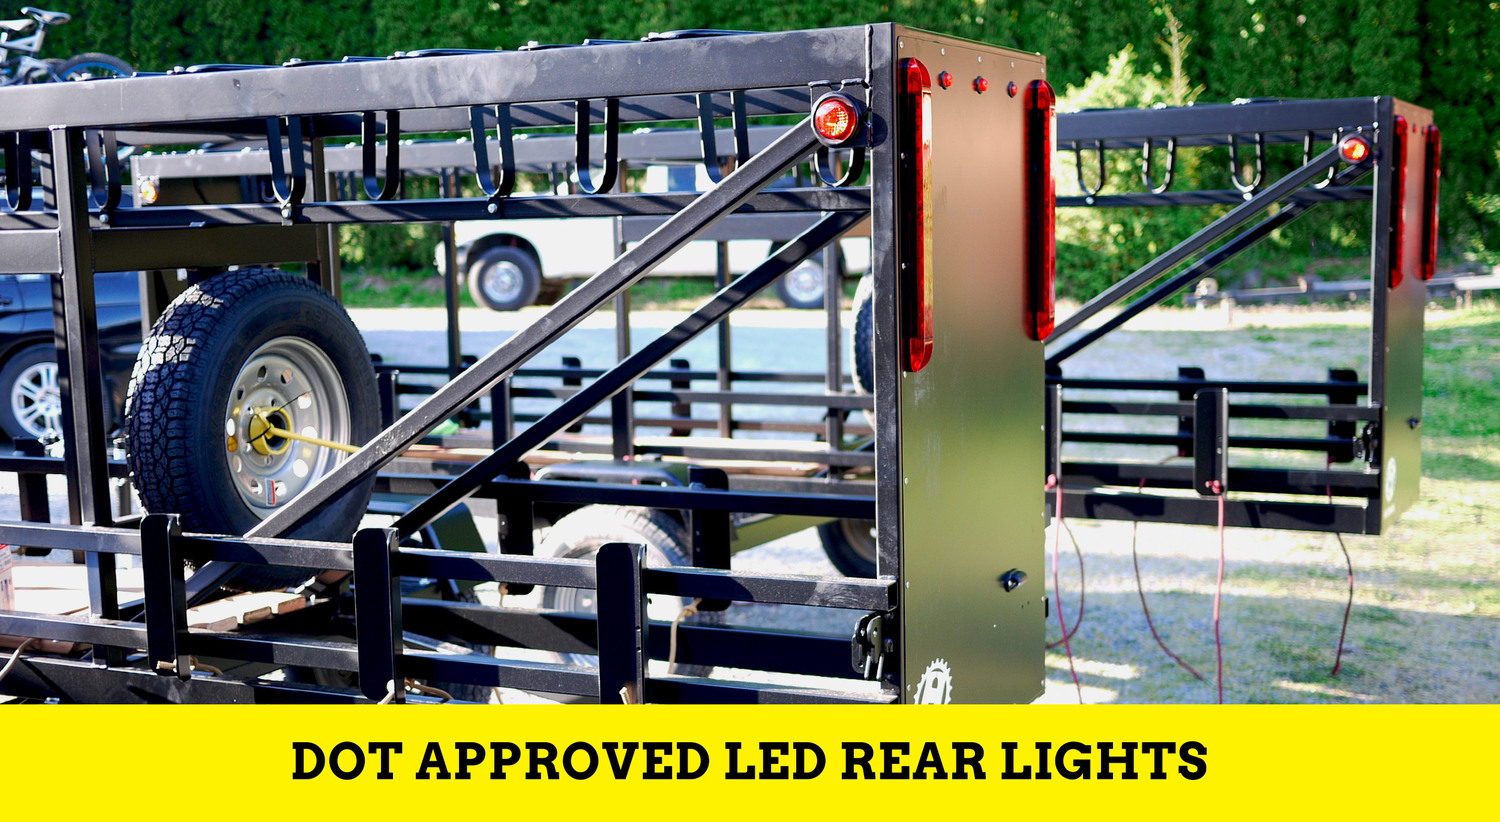 Huckwagons Mountain Bike Shuttle Trailers Electric Tongue Jack Wiring Trailer Dot Approved Led Rear Lights